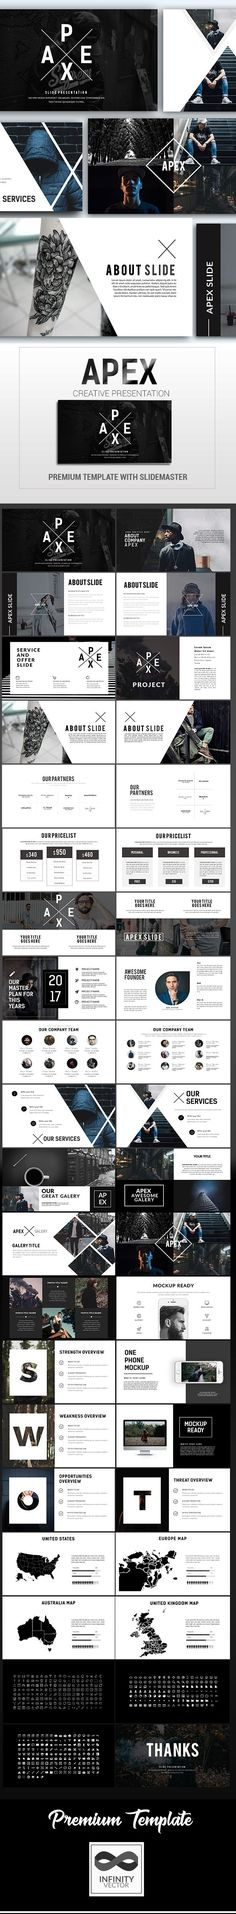 report pad marketing presentation template keynote | marketing, Presentation templates